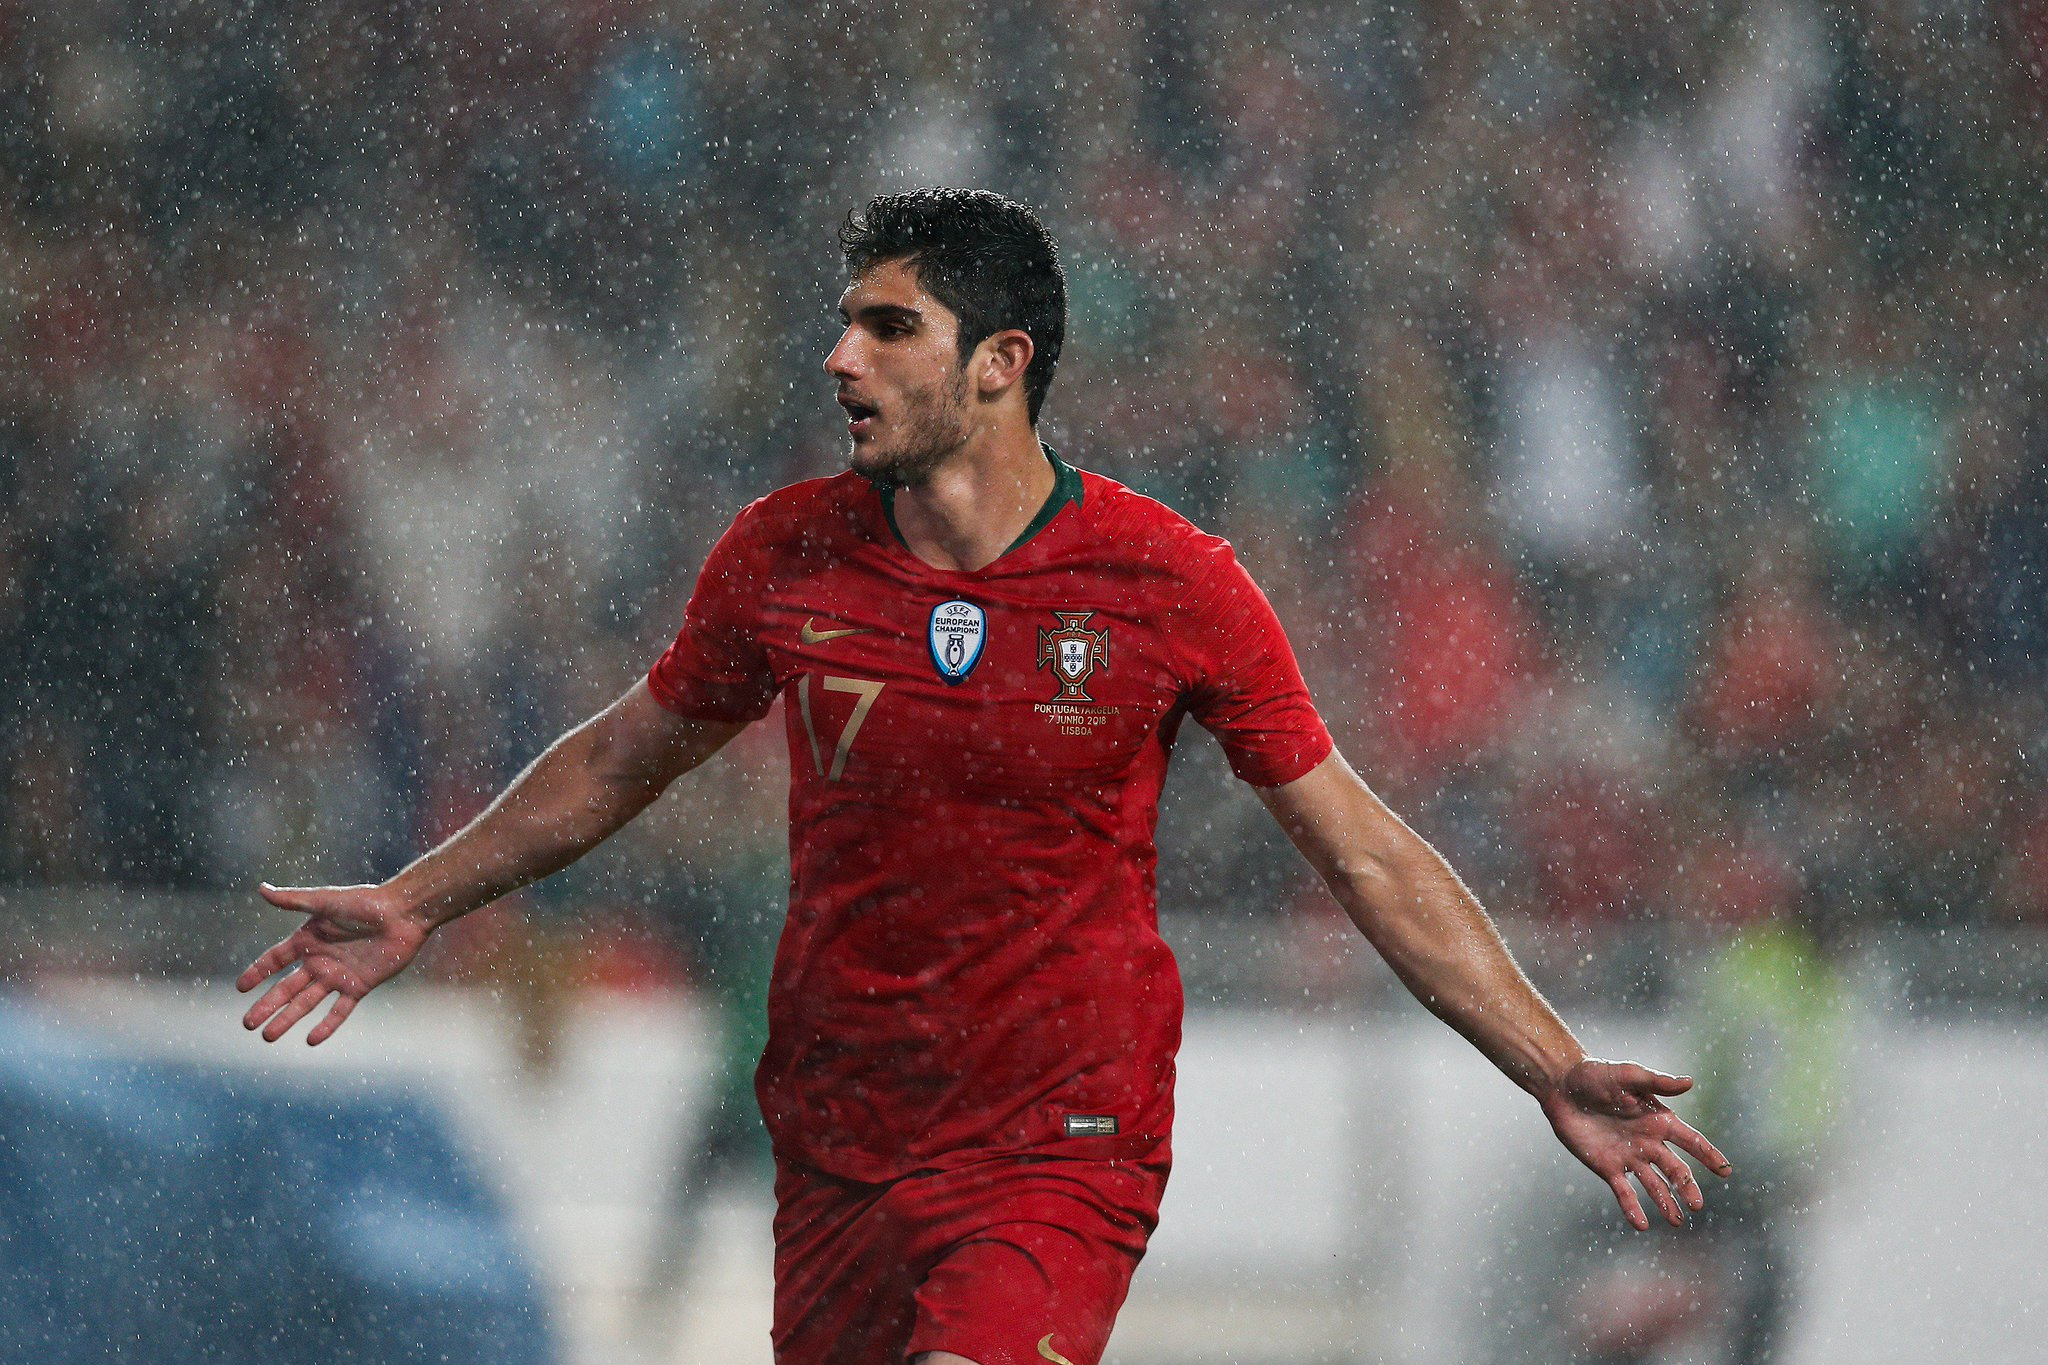 ���� Gonçalo Guedes ⚽️⚽️  A #UCL star in 2018/19? �� https://t.co/d2tJro658C